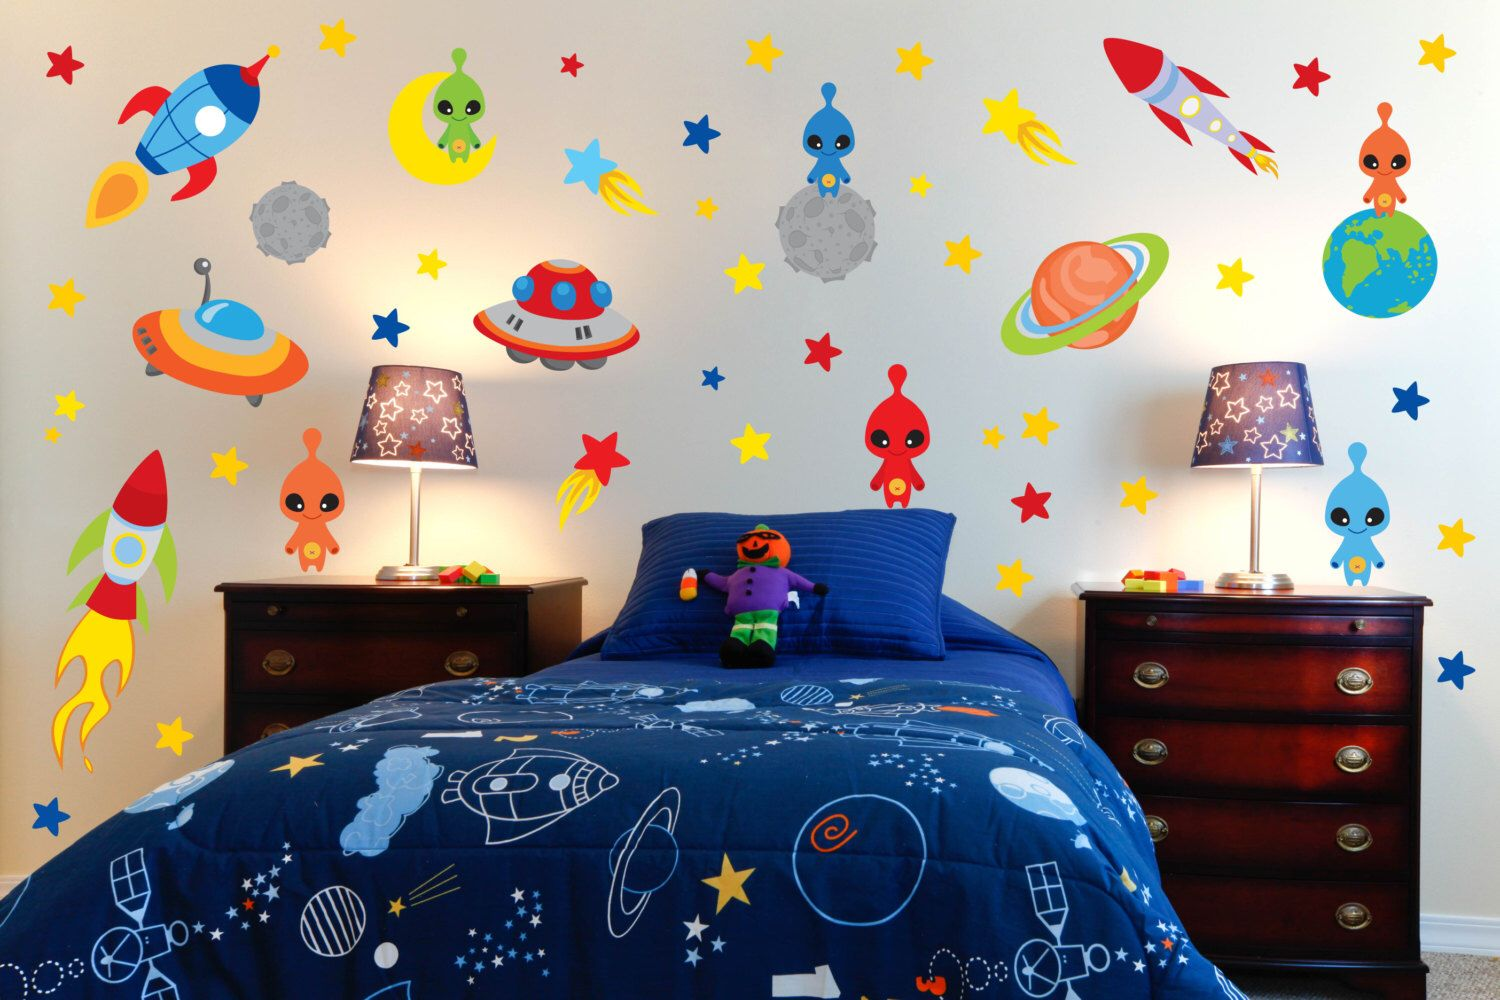 Outer Space Alien Rocket Ship Planet Wall Stickers Peel Stick